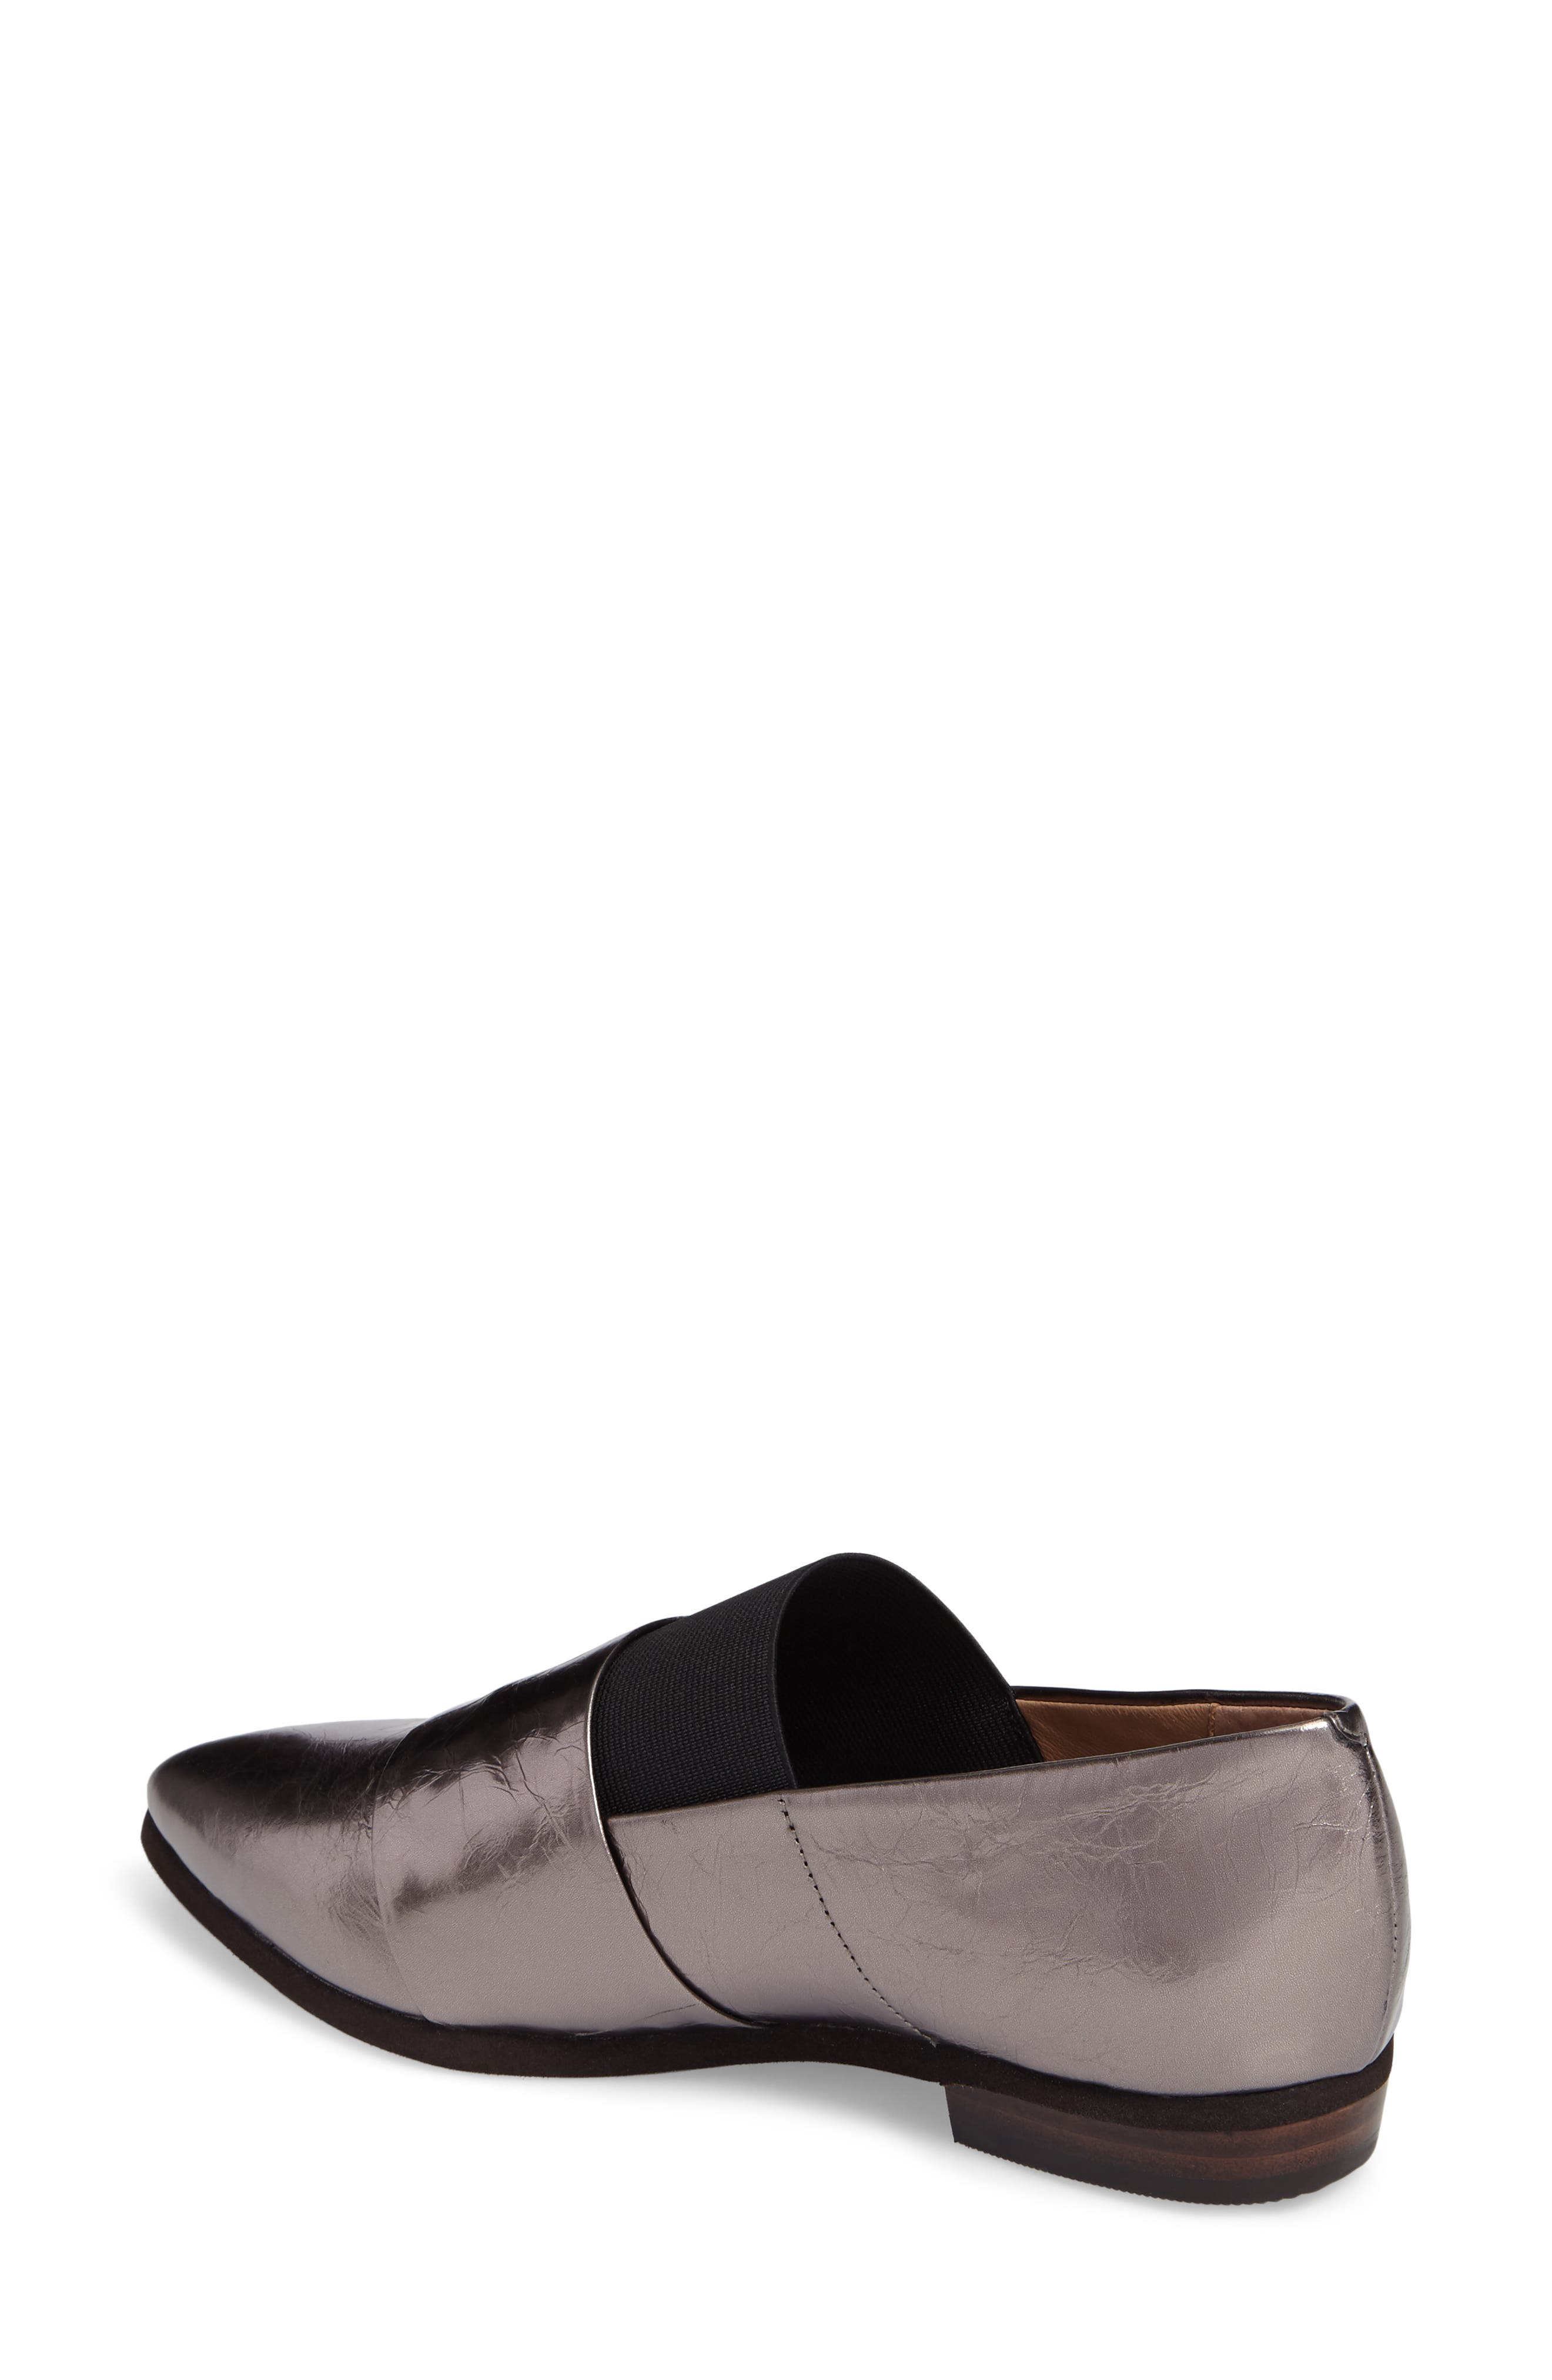 Alternate Image 2  - Linea Paolo Mason Loafer (Women)